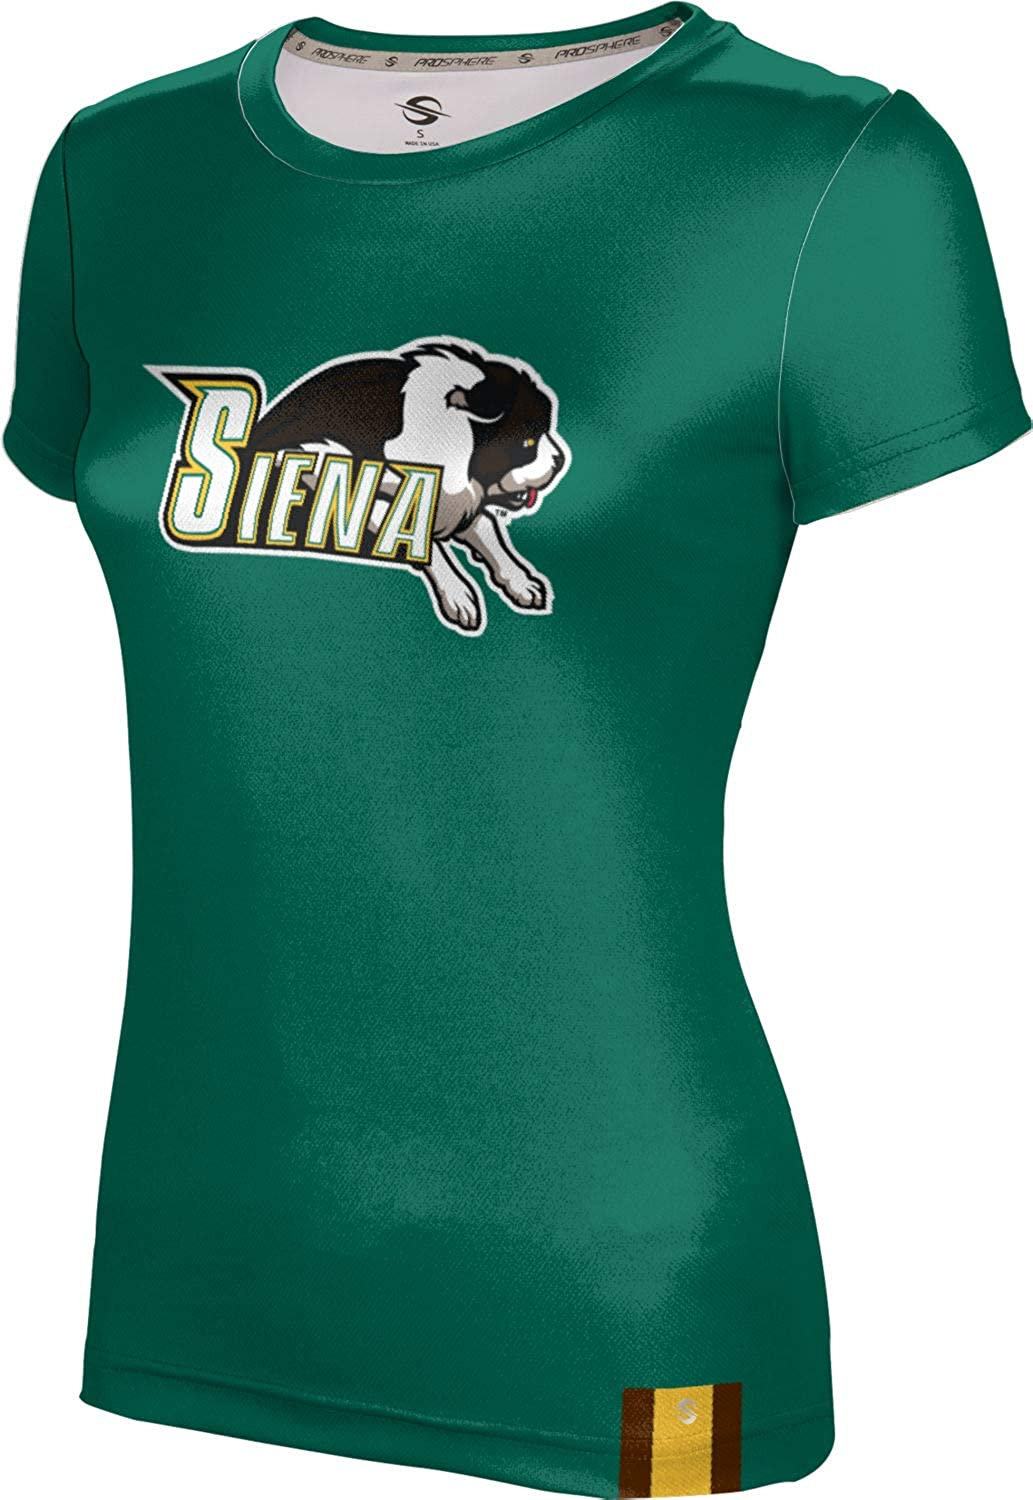 ProSphere Siena College Girls' Performance T-Shirt (Solid)